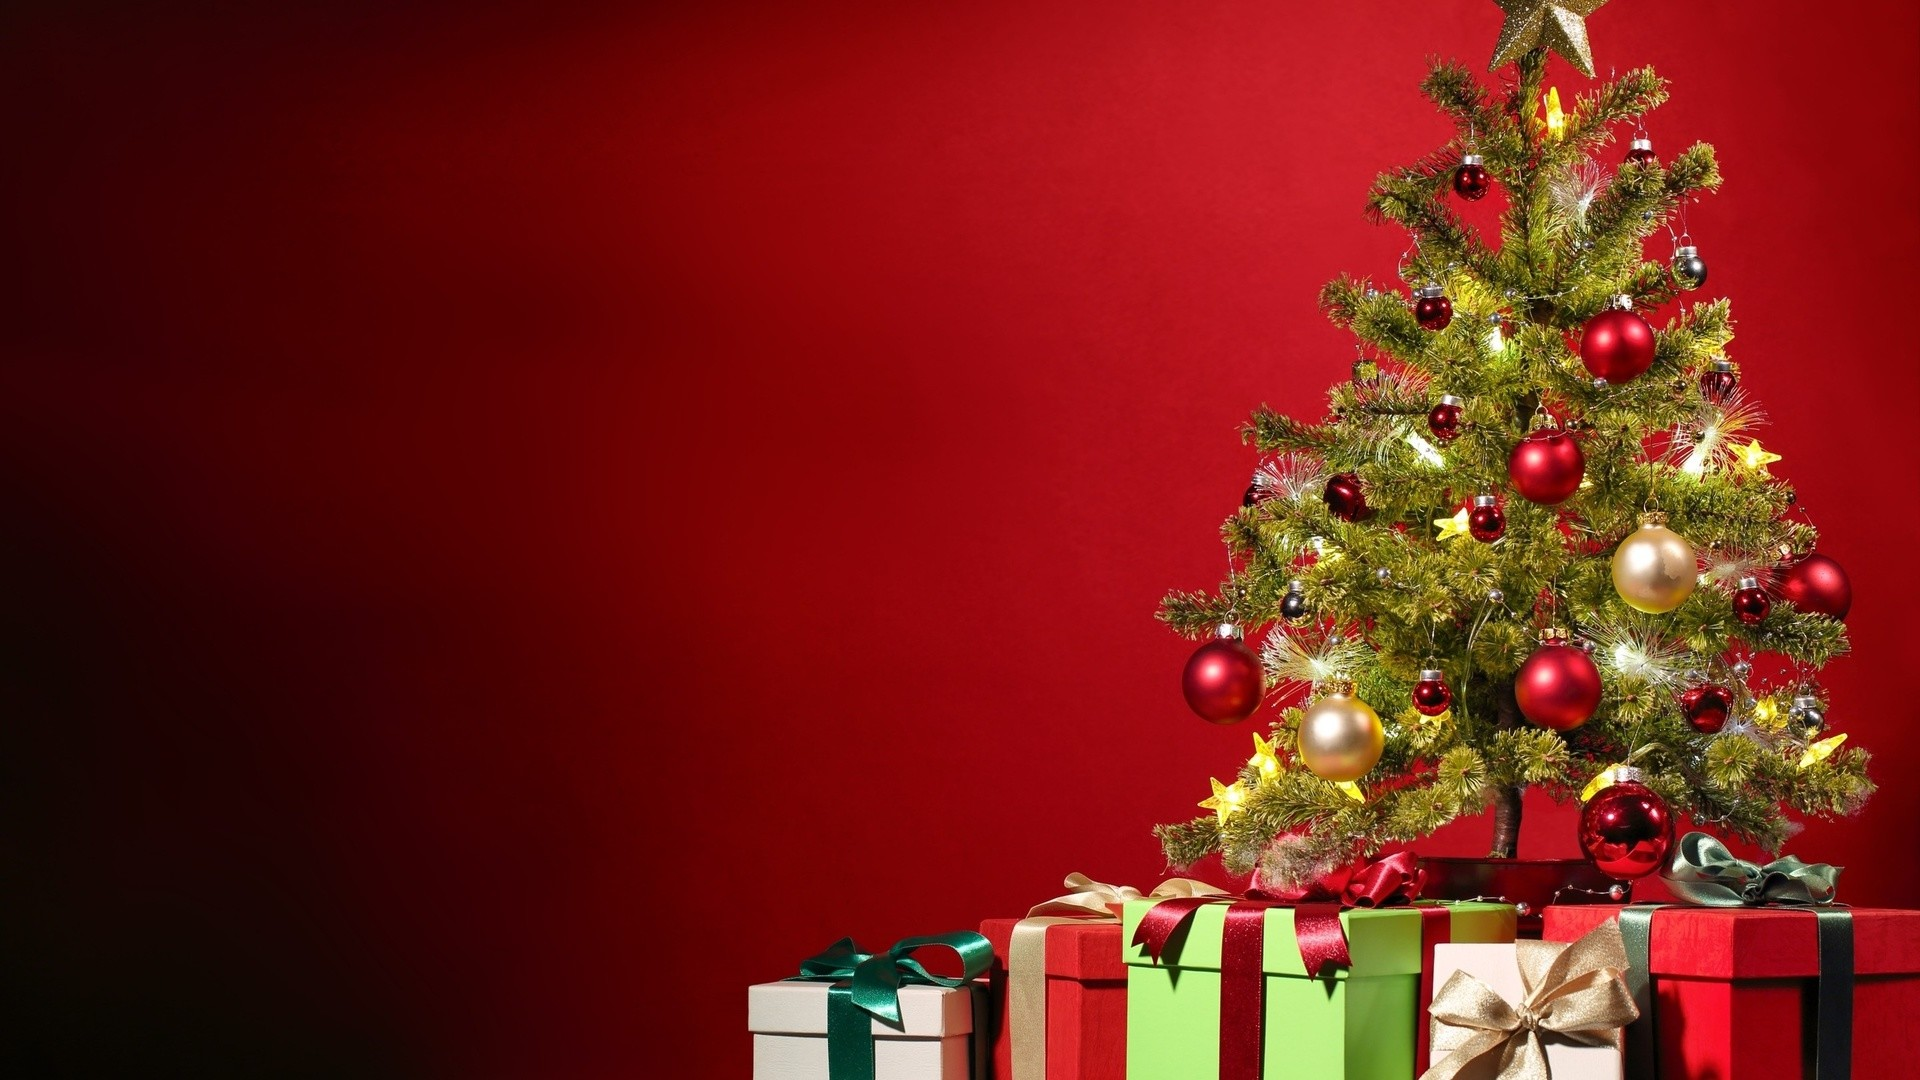 Free Download Merry Christmas Tree Wallpaper Download